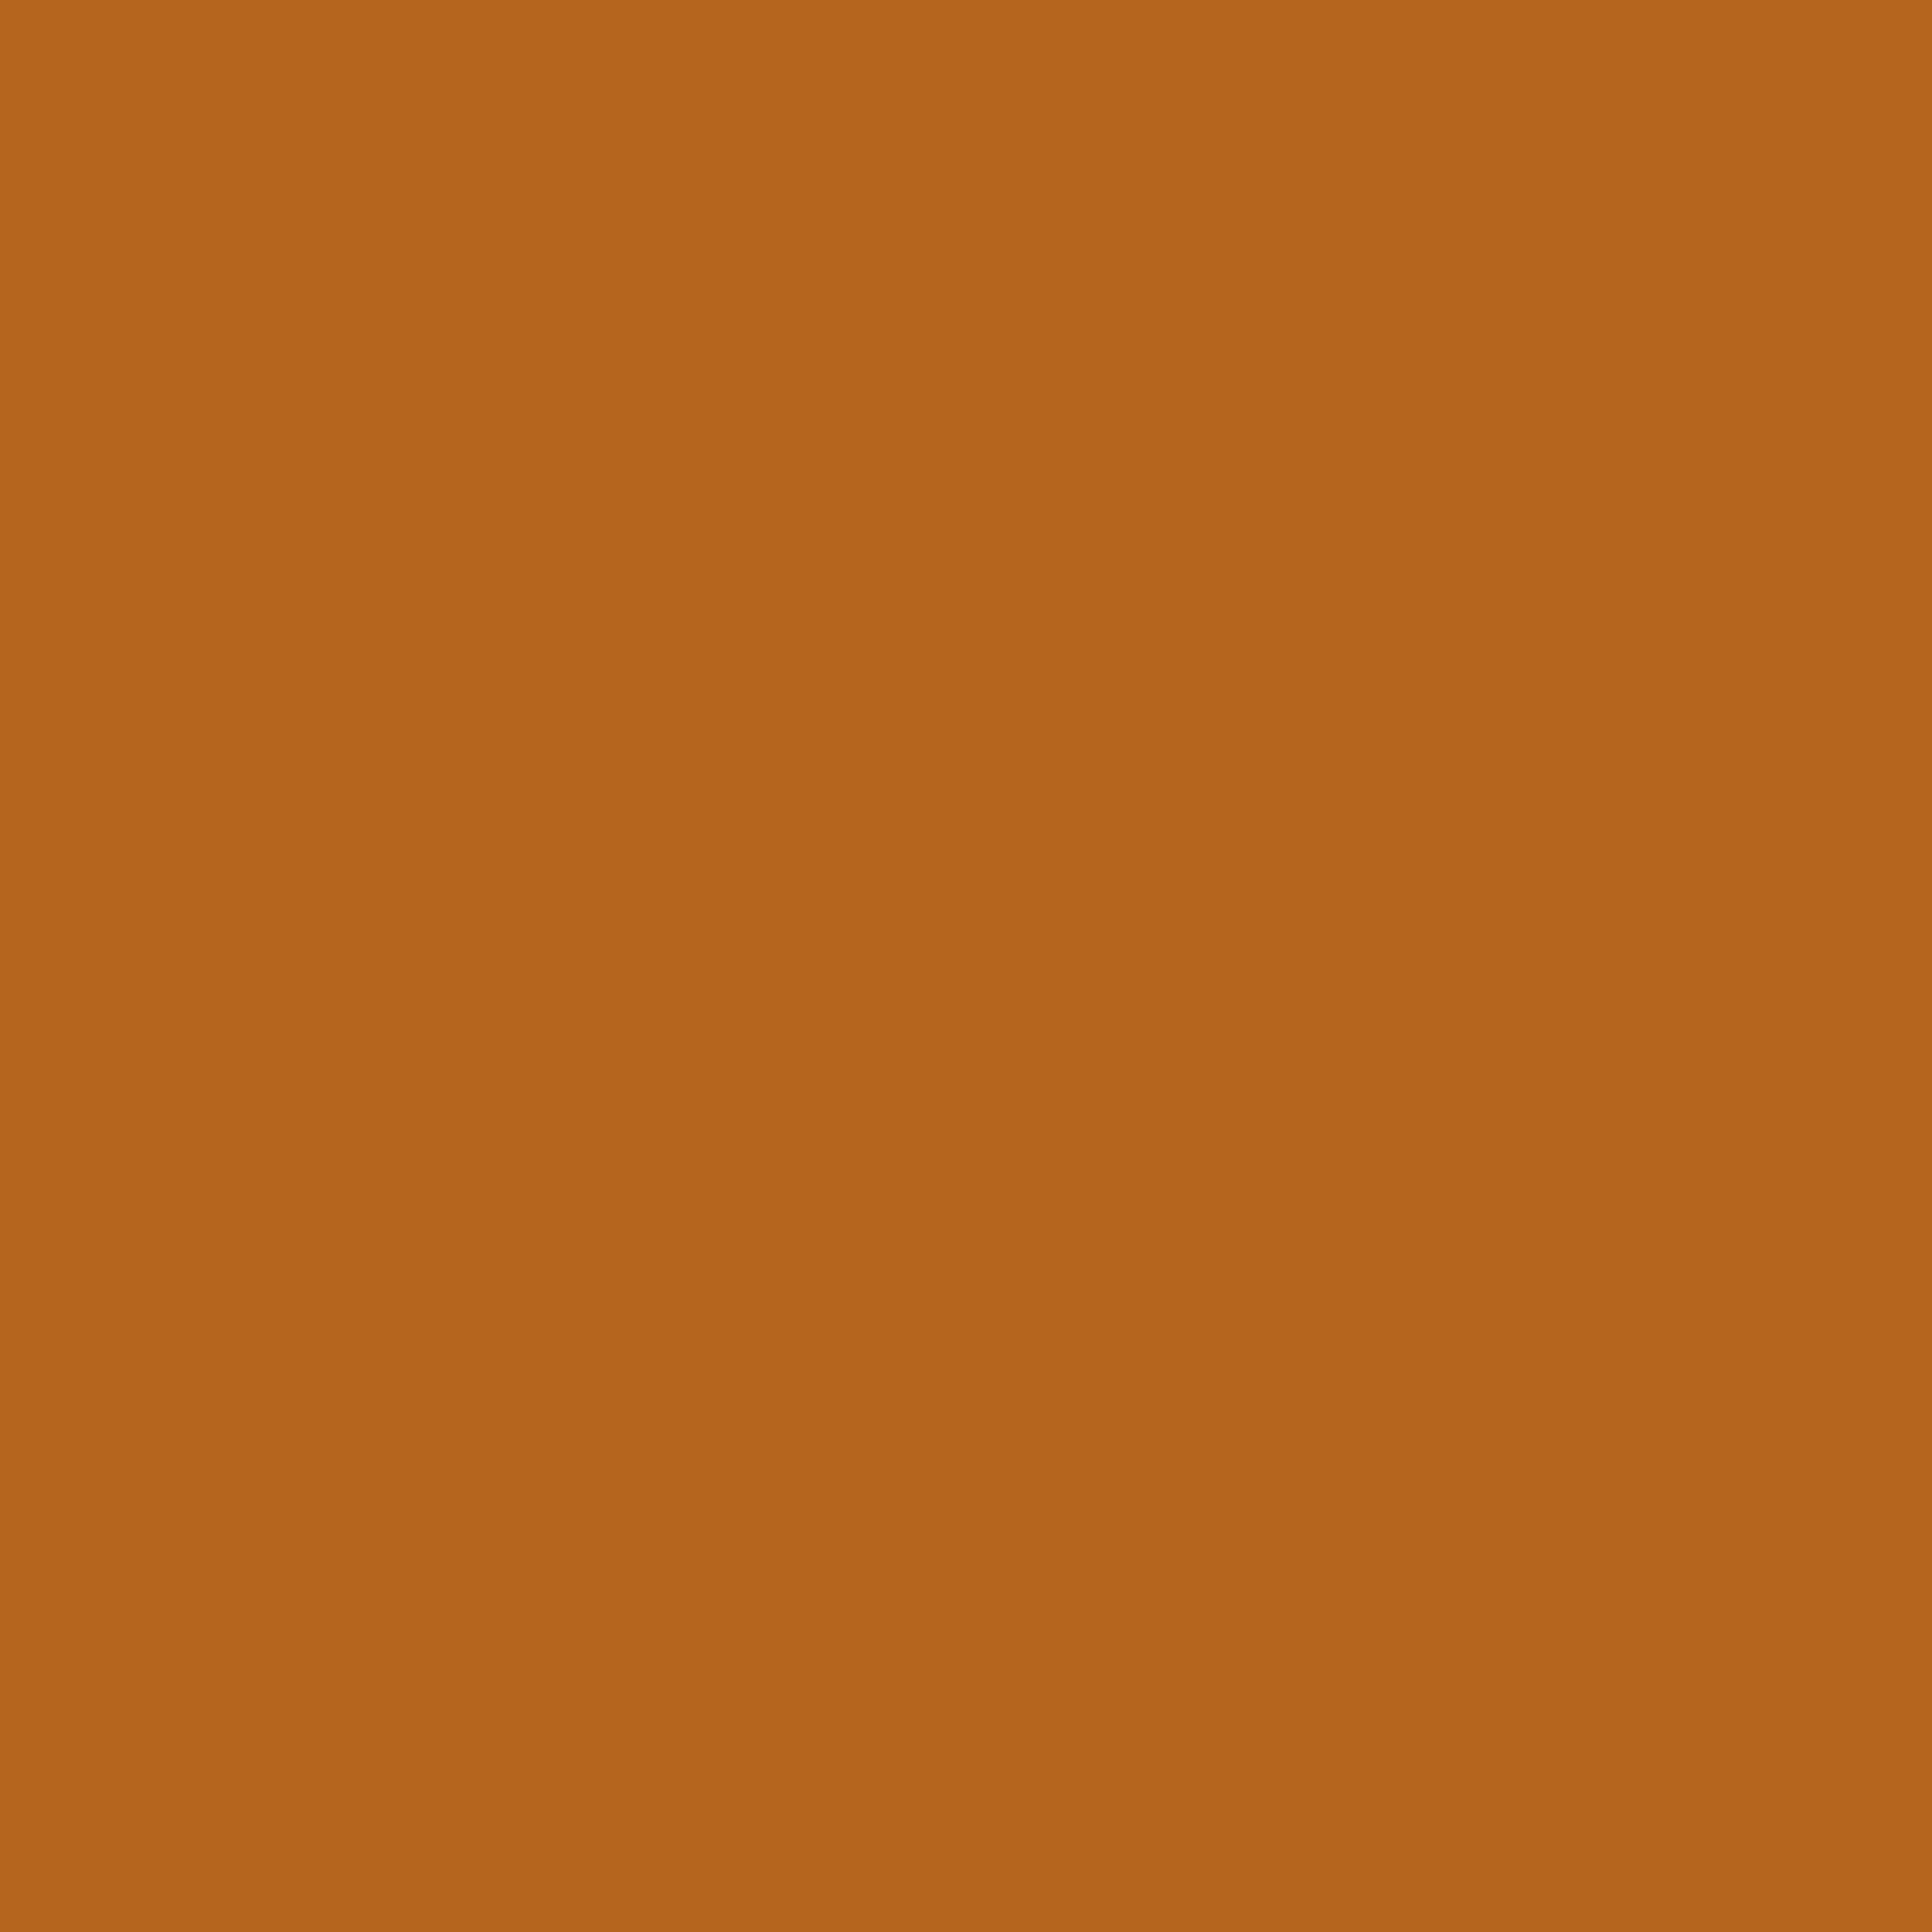 2732x2732 Light Brown Solid Color Background